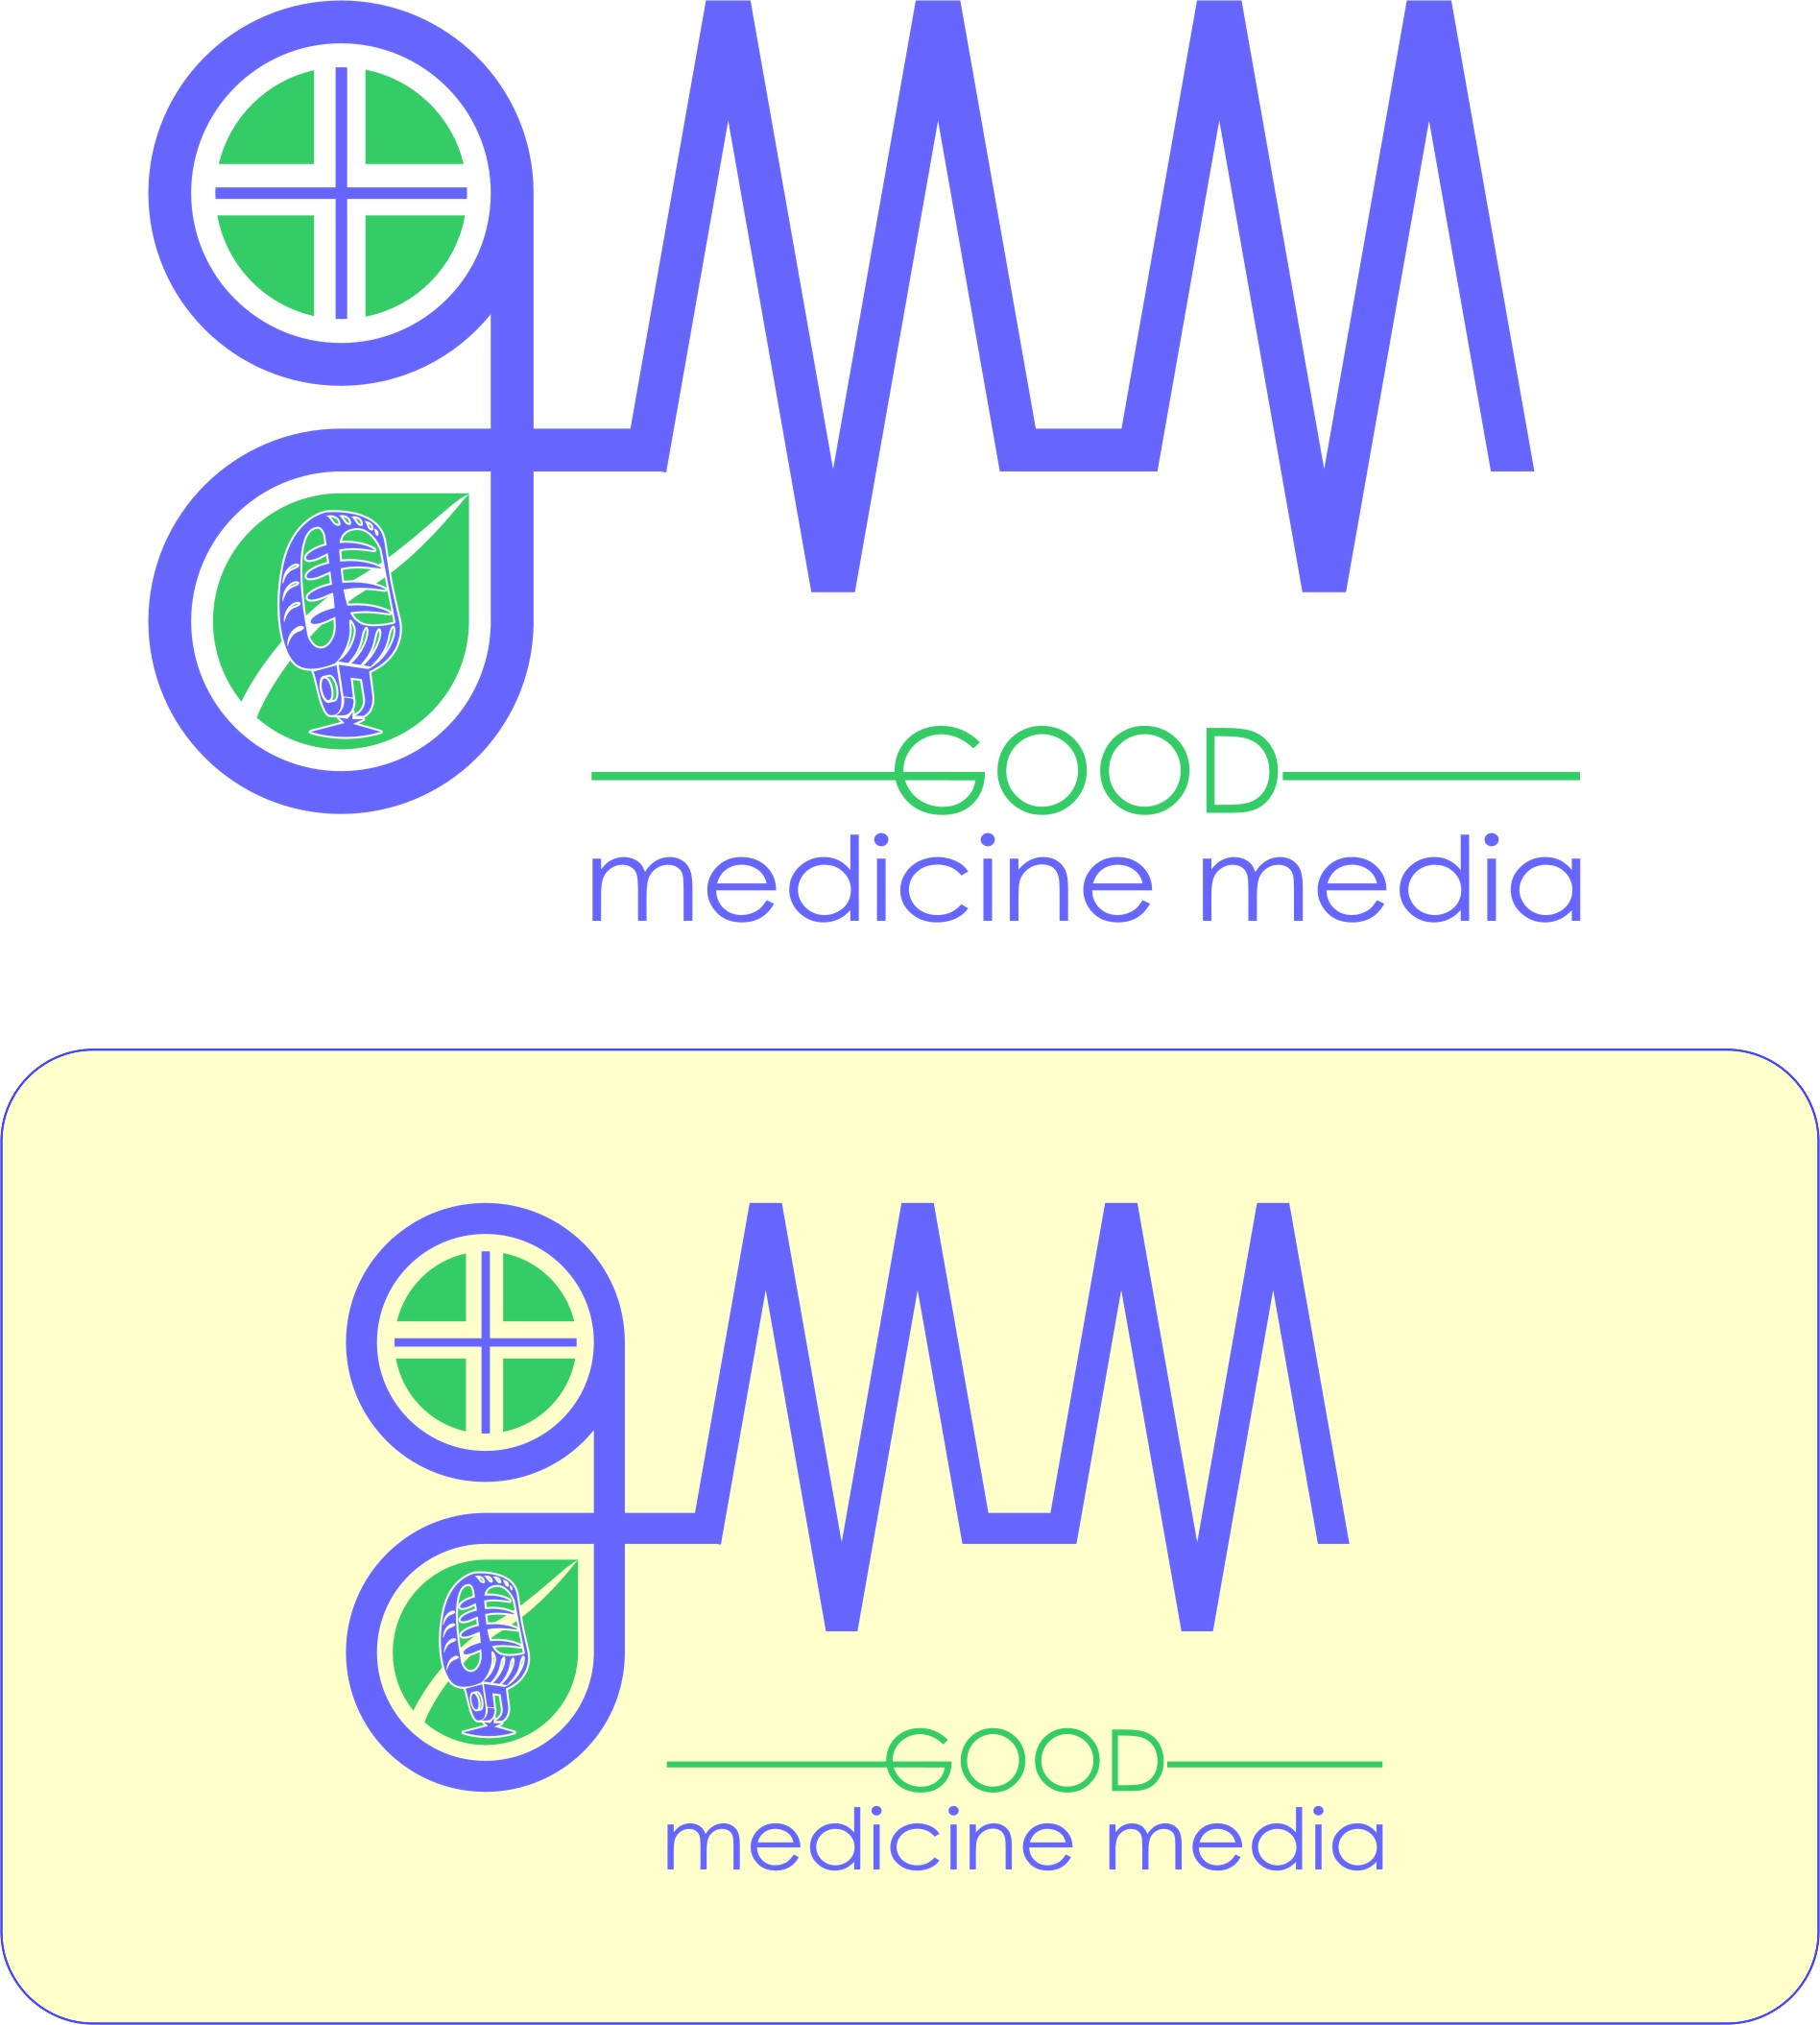 Logo Design by Korsunov Oleg - Entry No. 213 in the Logo Design Contest Good Medicine Media Logo Design.